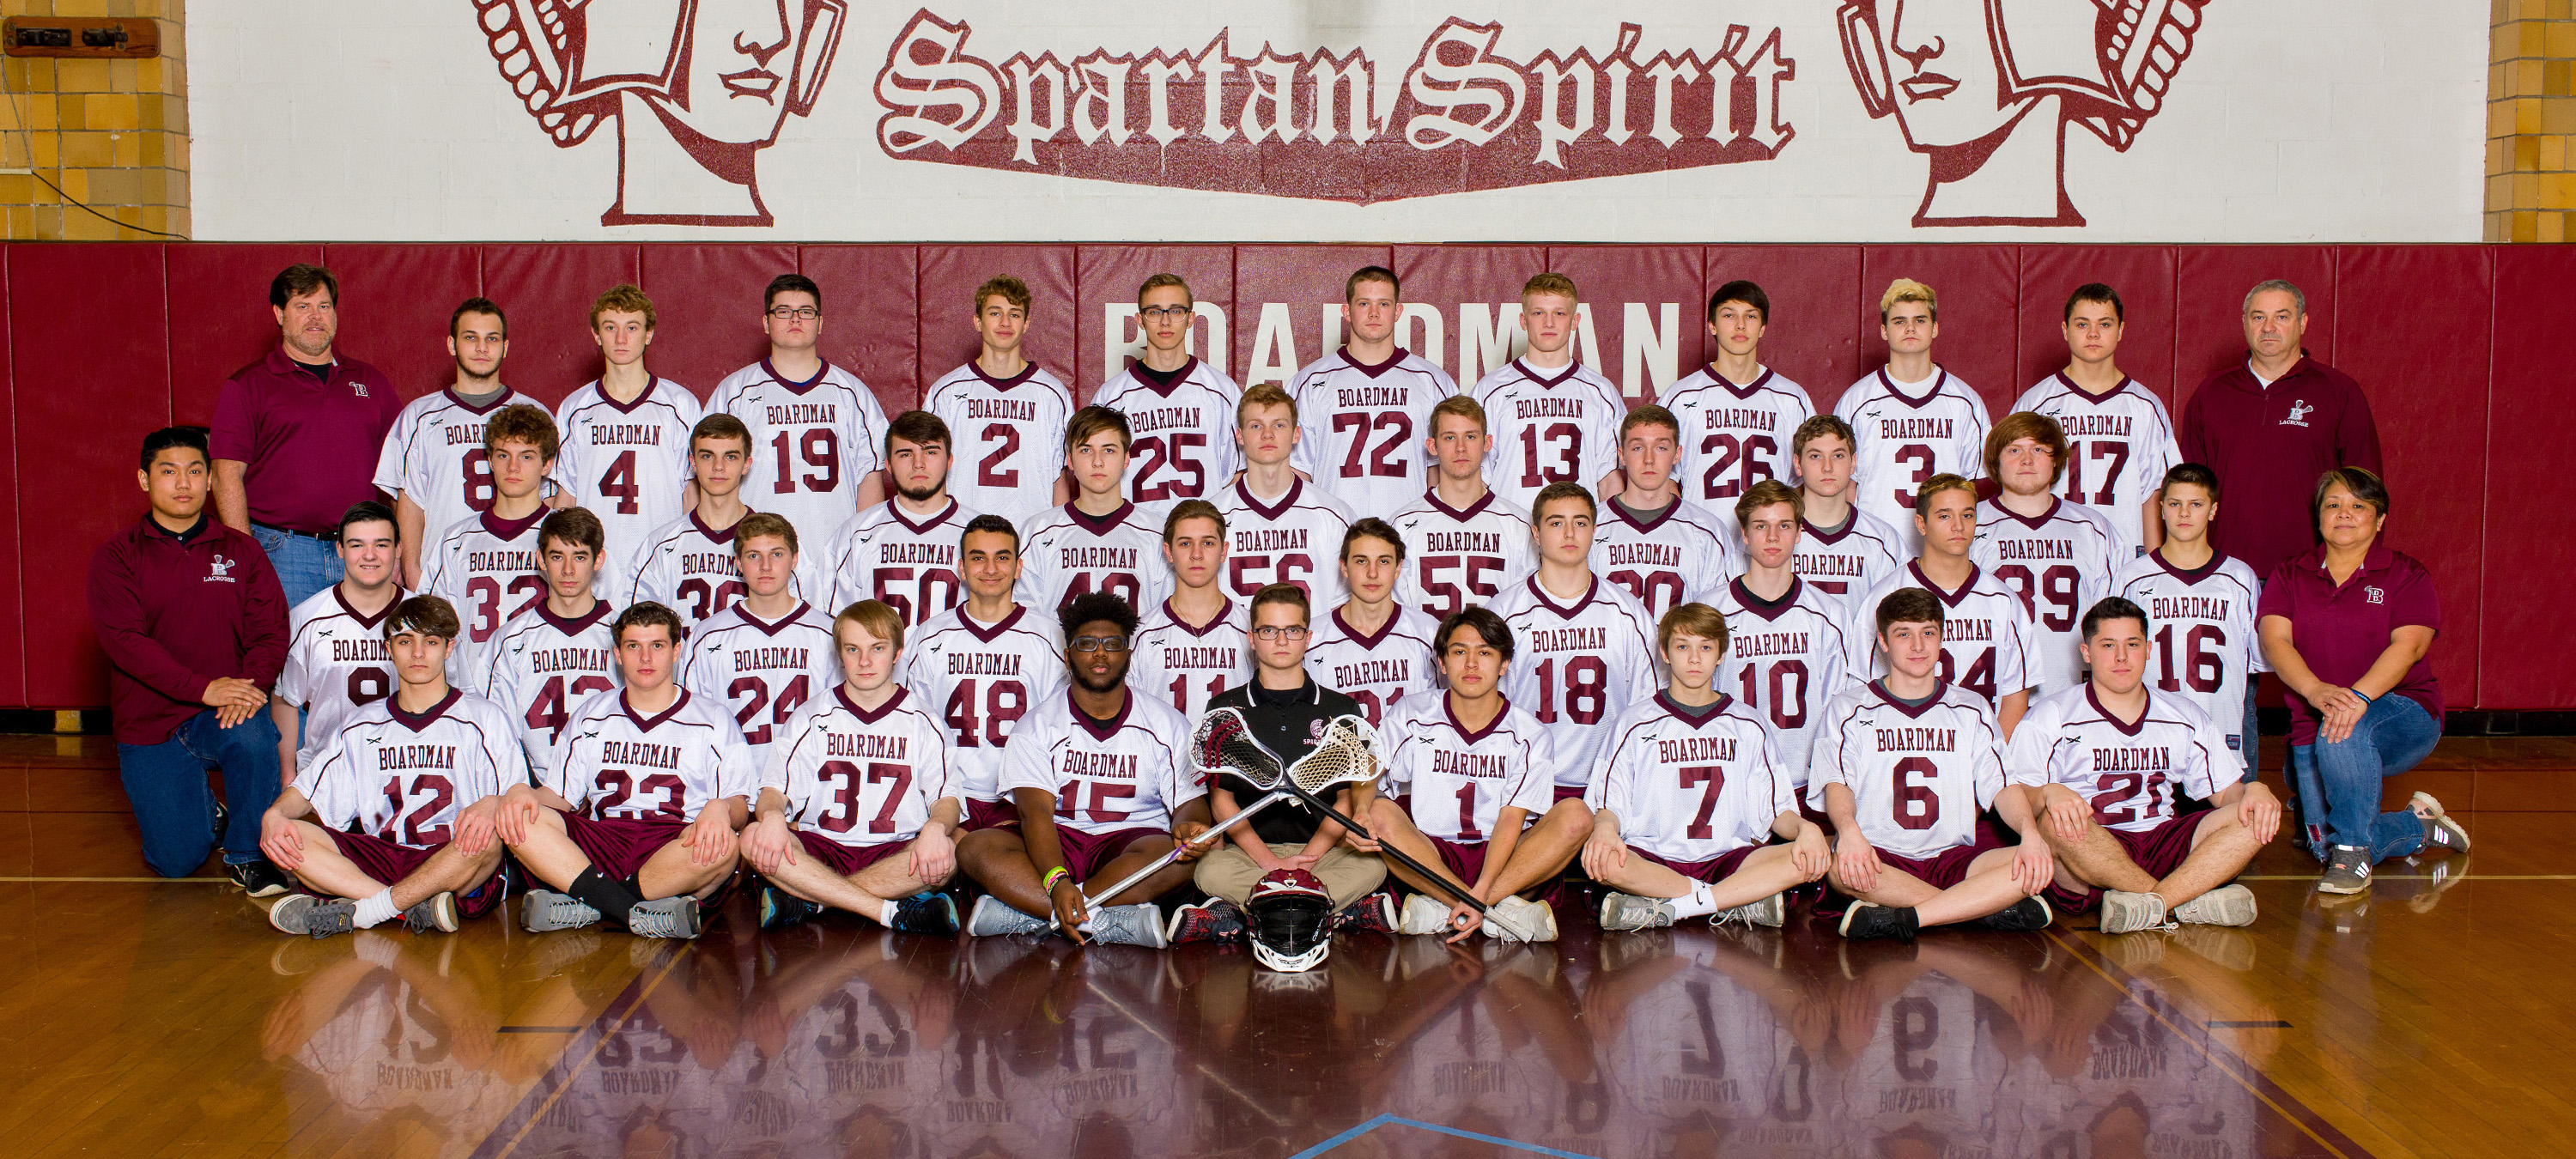 Boys Varsity Lacrosse Team Defeats Canfield 11-10 Becoming First Valley Team To Defeat The Cardinals